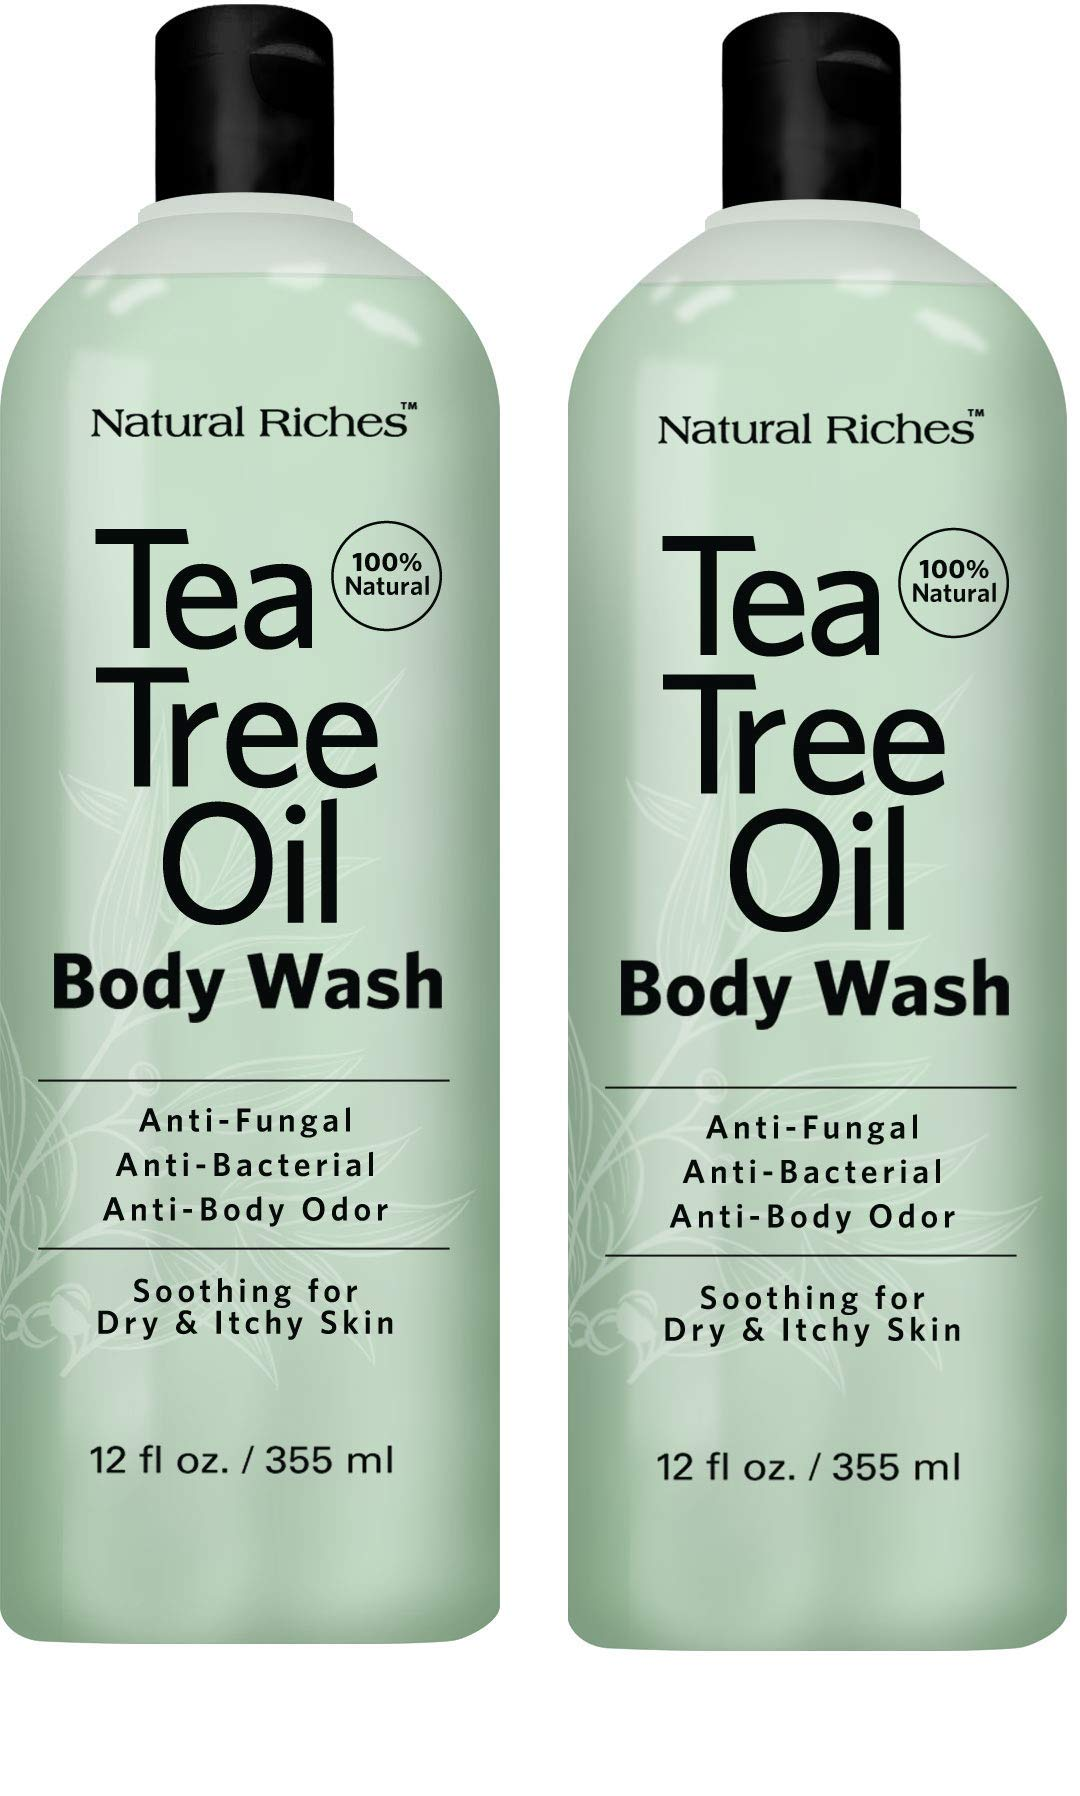 Antifungal TeaTree Oil Body Wash, Peppermint & Eucalyptus Oil Antibacterial Soap by Natural Riches -12 oz Helps Athletes Foot, Eczema, Ringworm, Toenail Fungus, Jock itch, Body Itch (2 pack)